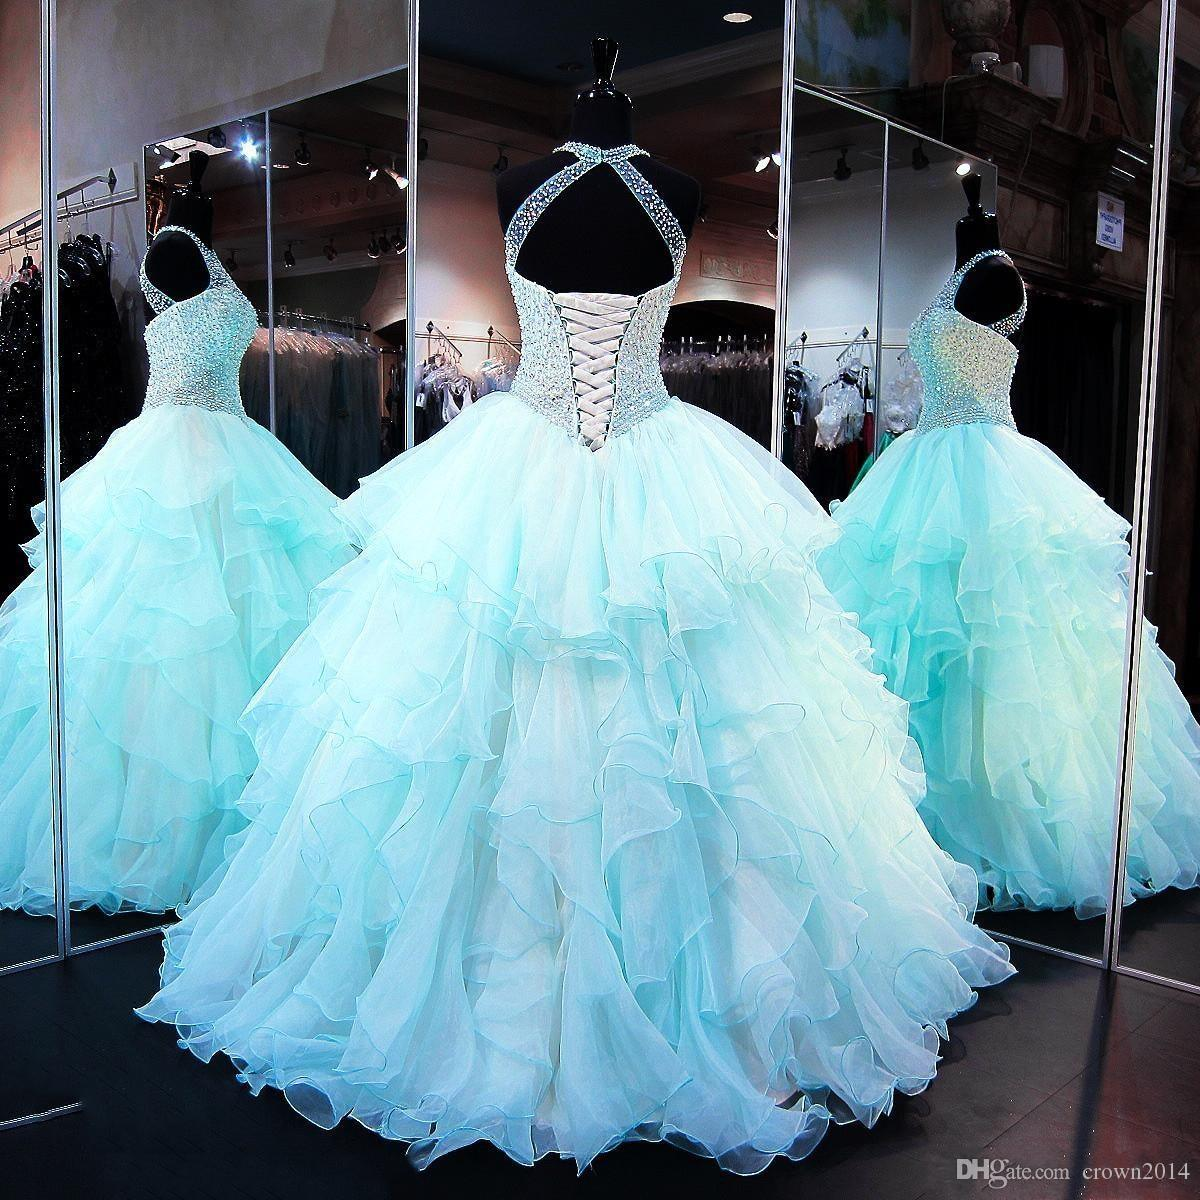 Saia Organza Ruffled Quinceanera Vestidos 2019 com Pérola Frisada Corpete Sheer Alta Neck Lace Up Backless Luz Céu Azul Prom Puffy Ball Gown